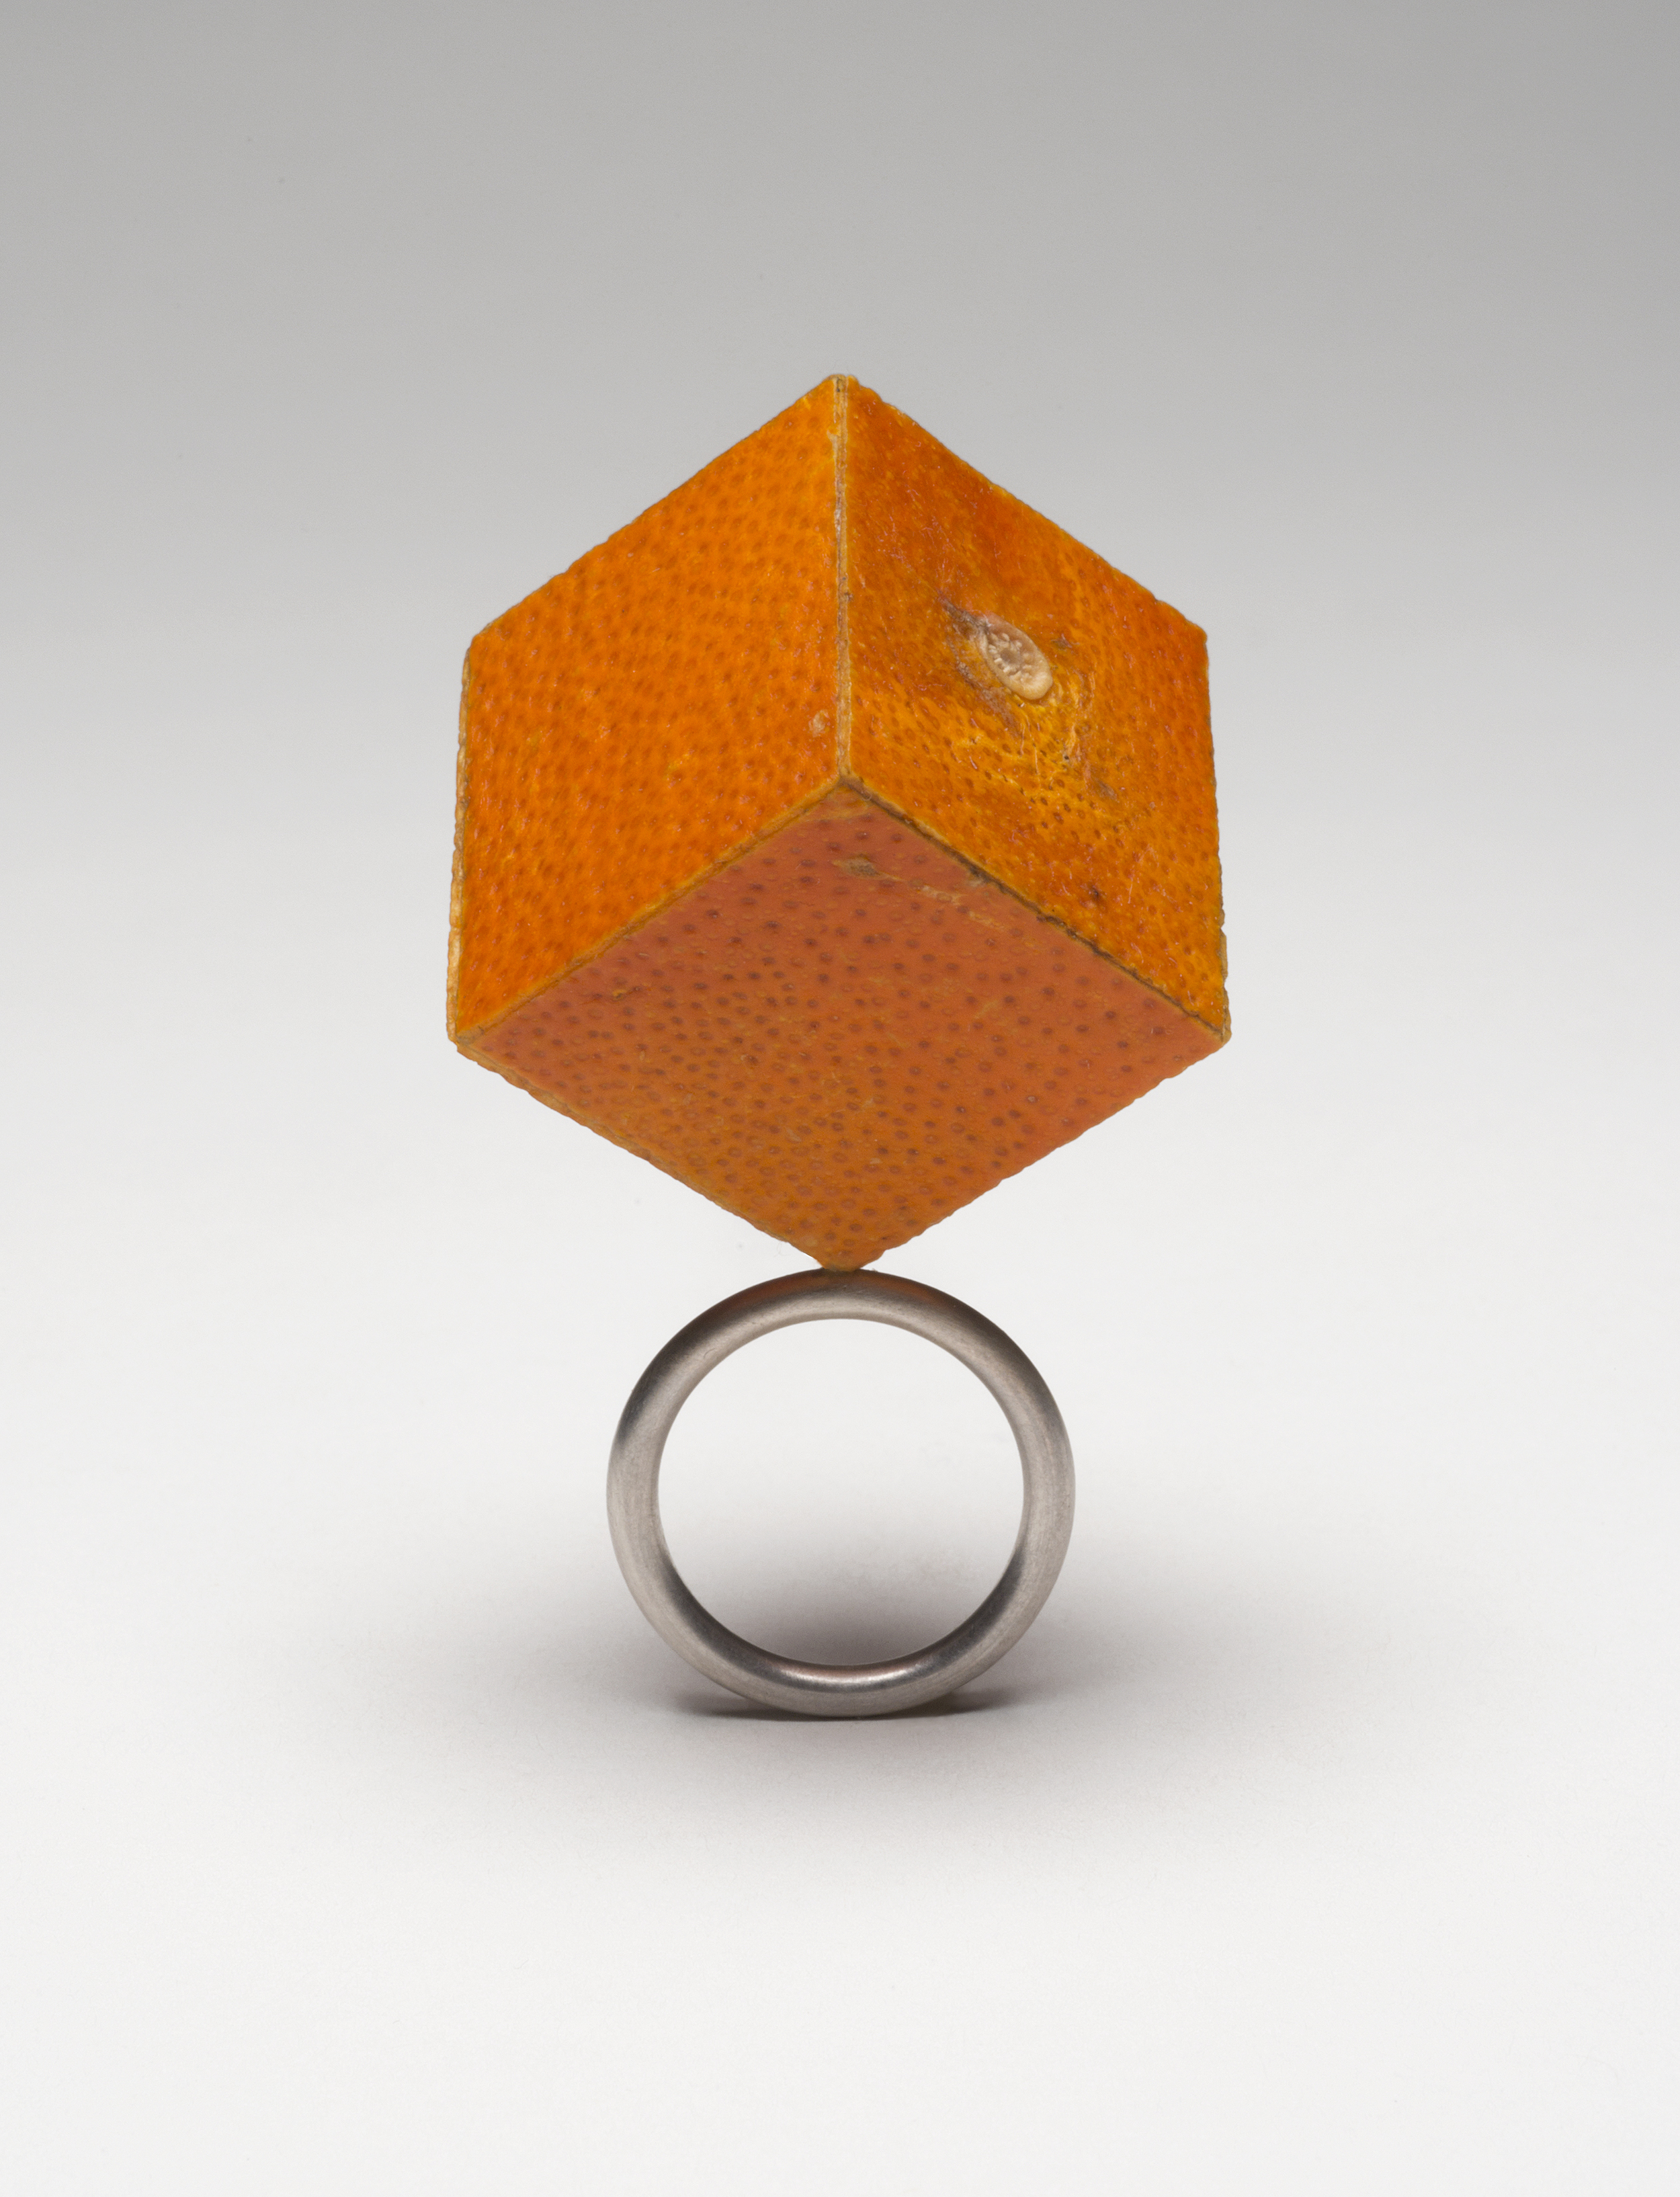 "One Inch Cubic Tangelo Ring , 2015. Tangelo peel, plywood, sterling silver. 2.25"" x 1.5"" x 1.5"""